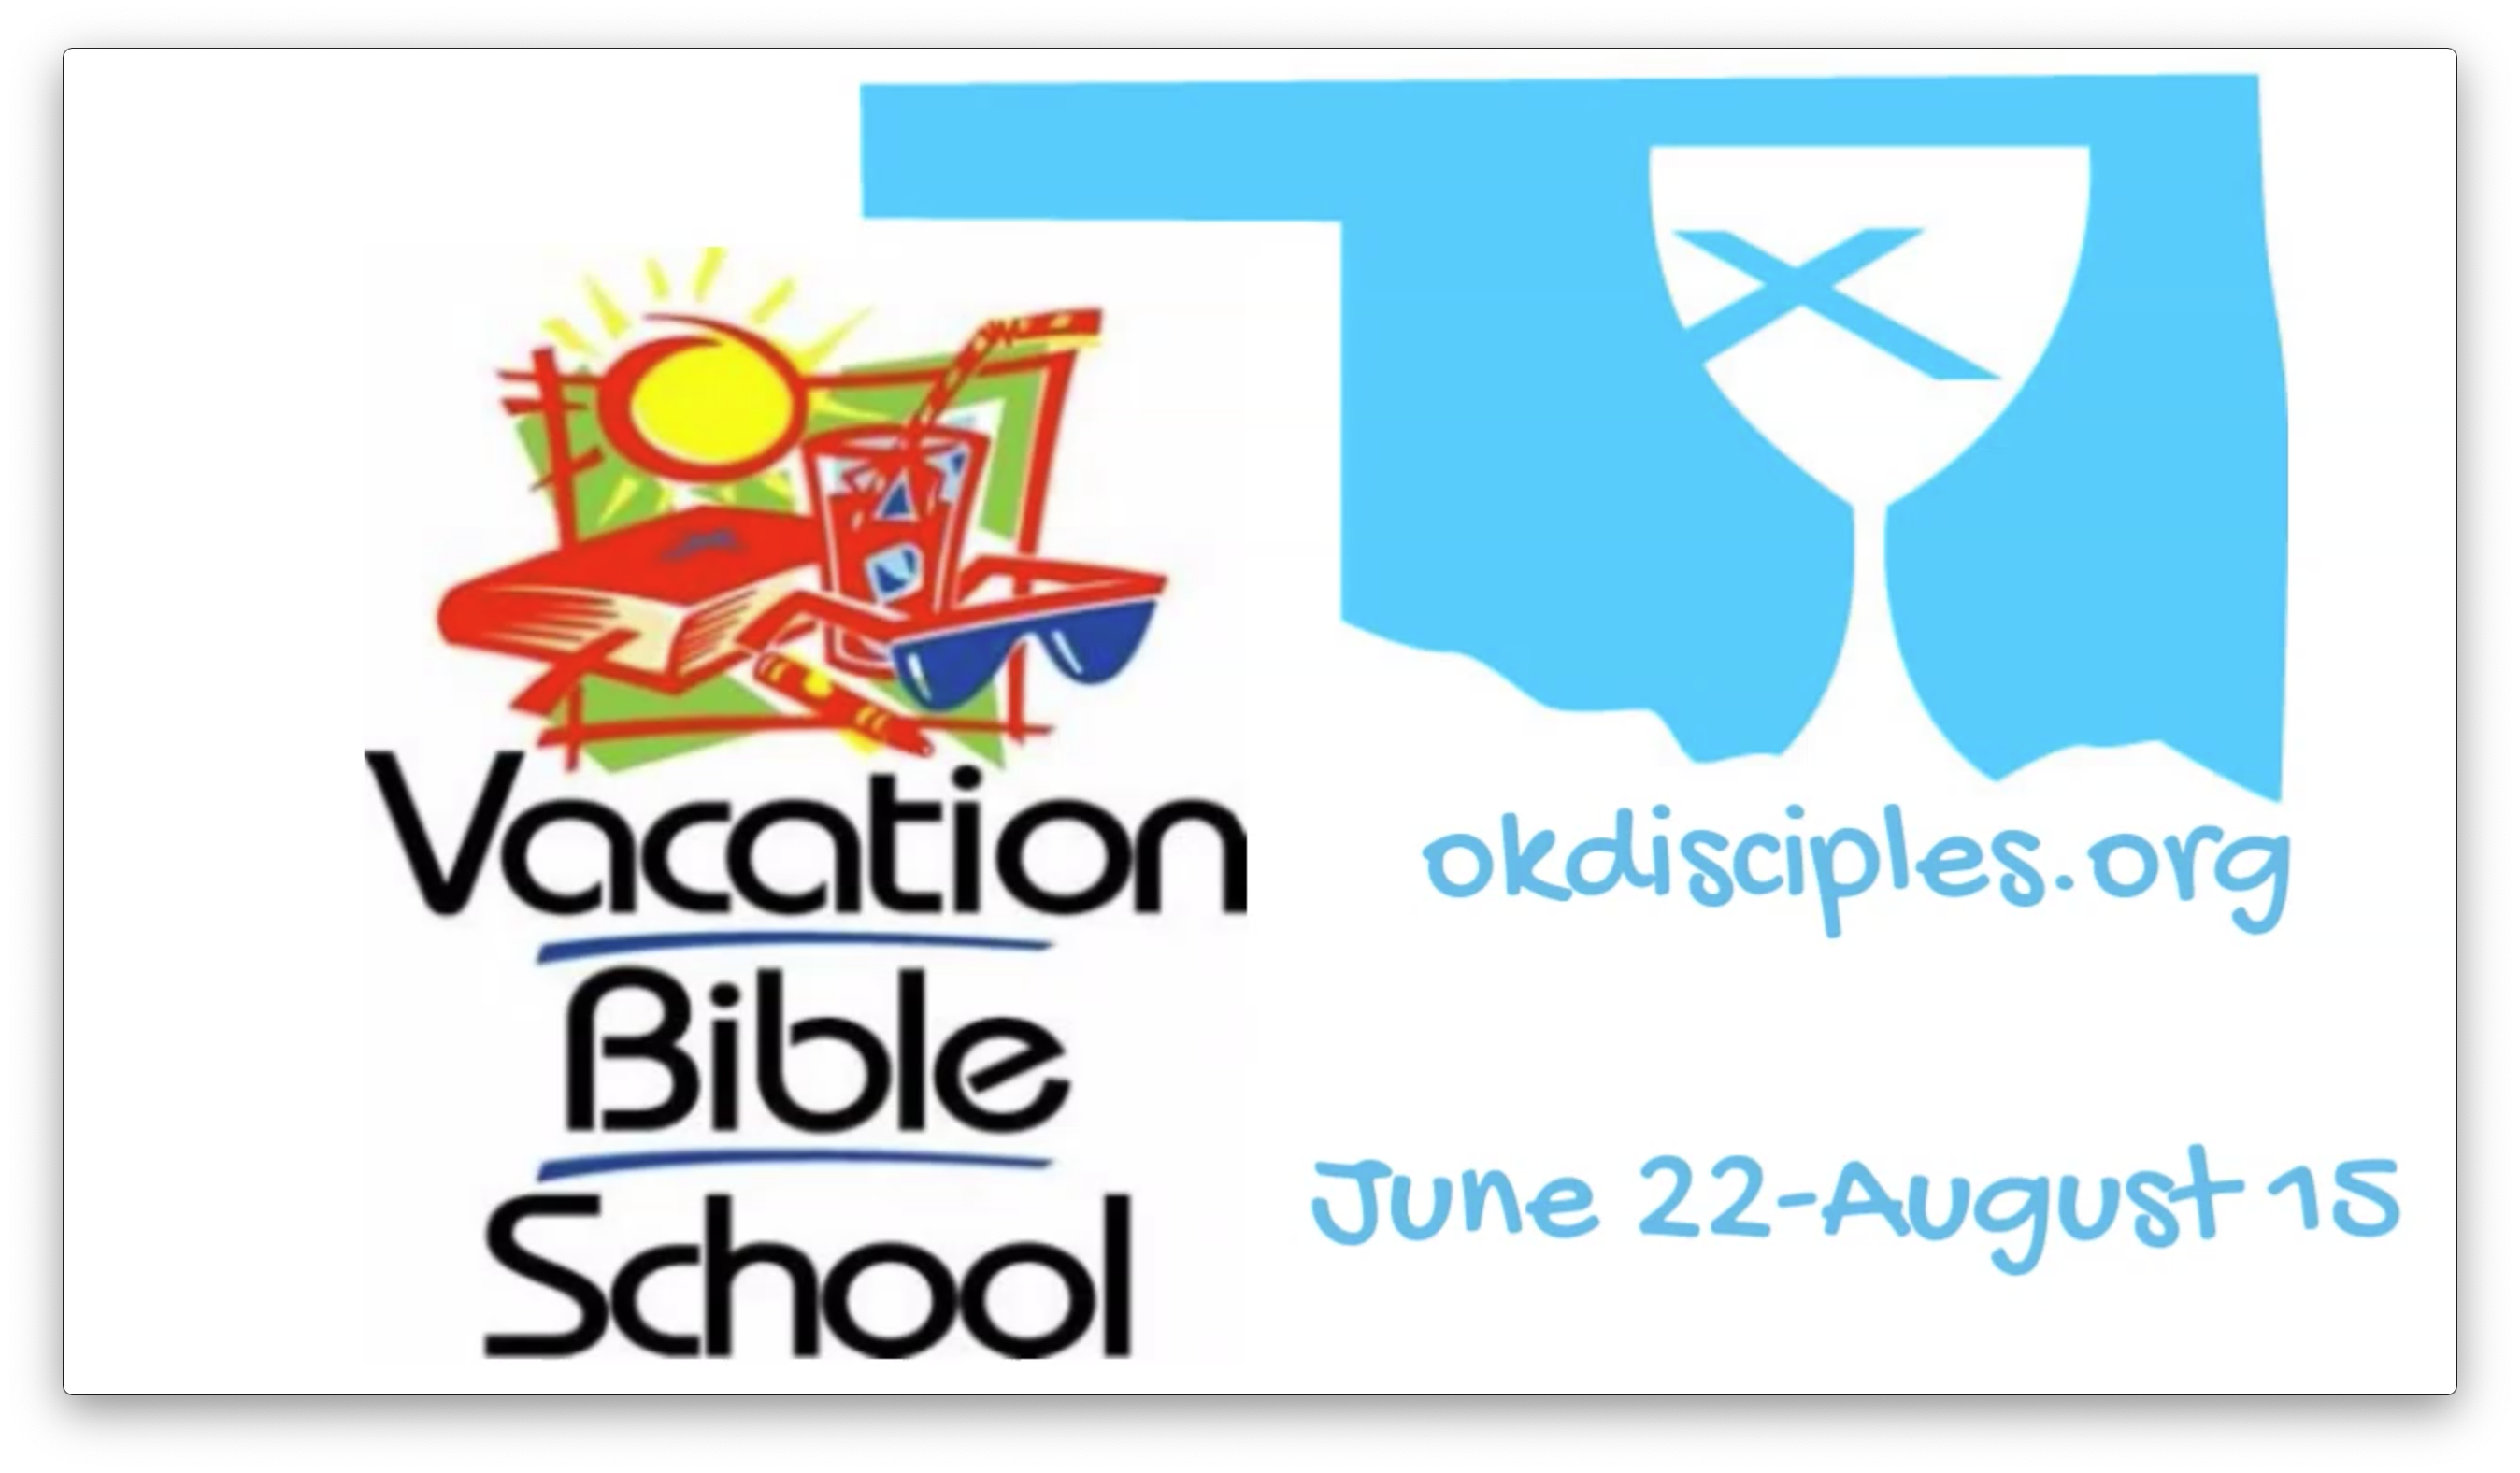 Time for Virtual Vacation Bible School